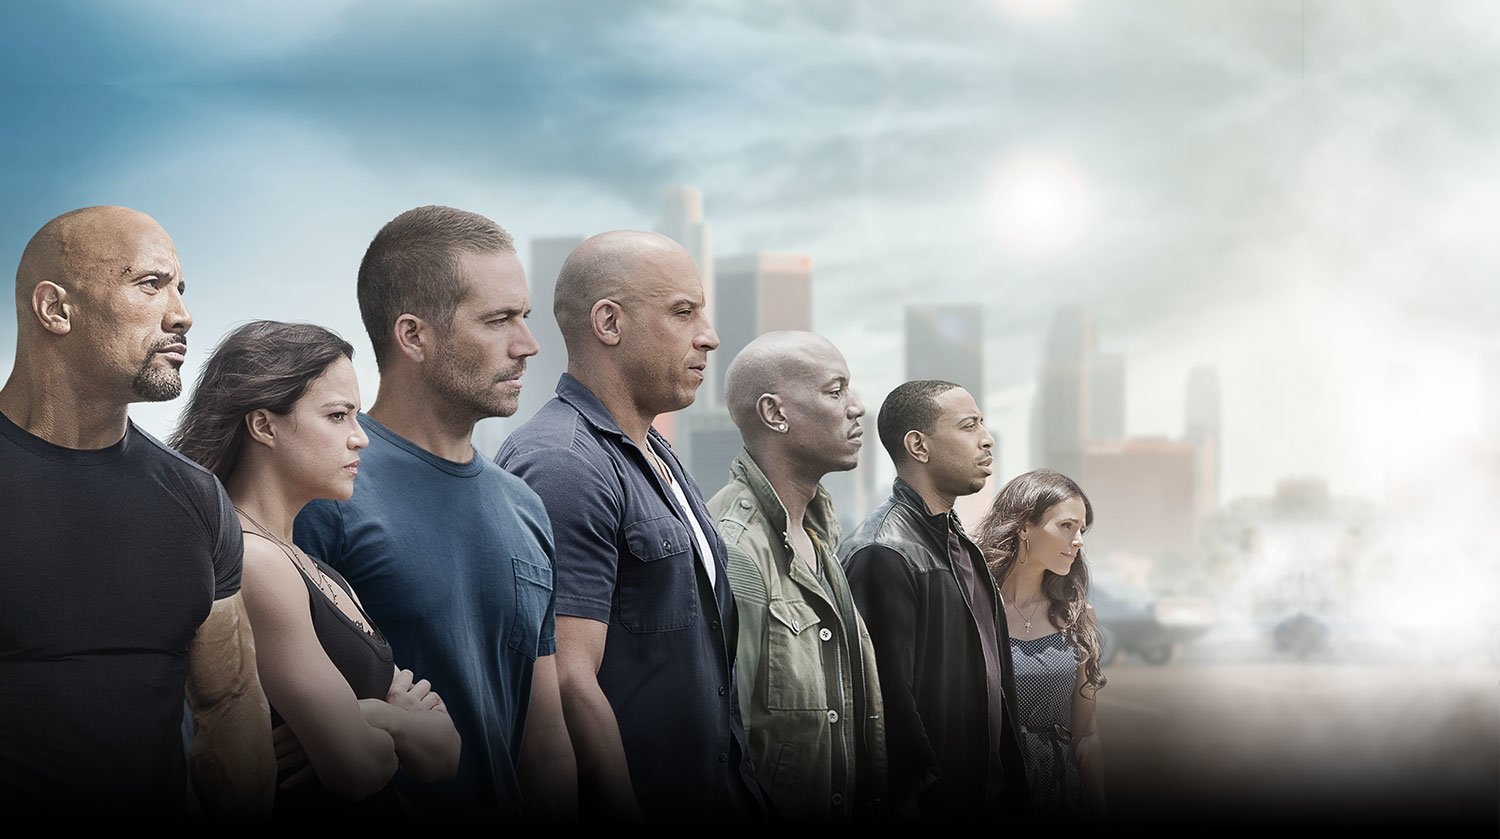 Movie - Furious 7  Mia Toretto Jordana Brewster rian O'Conner Paul Walker Roman Pearce Tyrese Gibson Letty Ortiz Michelle Rodriguez Tej (Fast & Furious) Ludacris Luke Hobbs Dwayne Johnson Dominic Toretto Vin Diesel Wallpaper